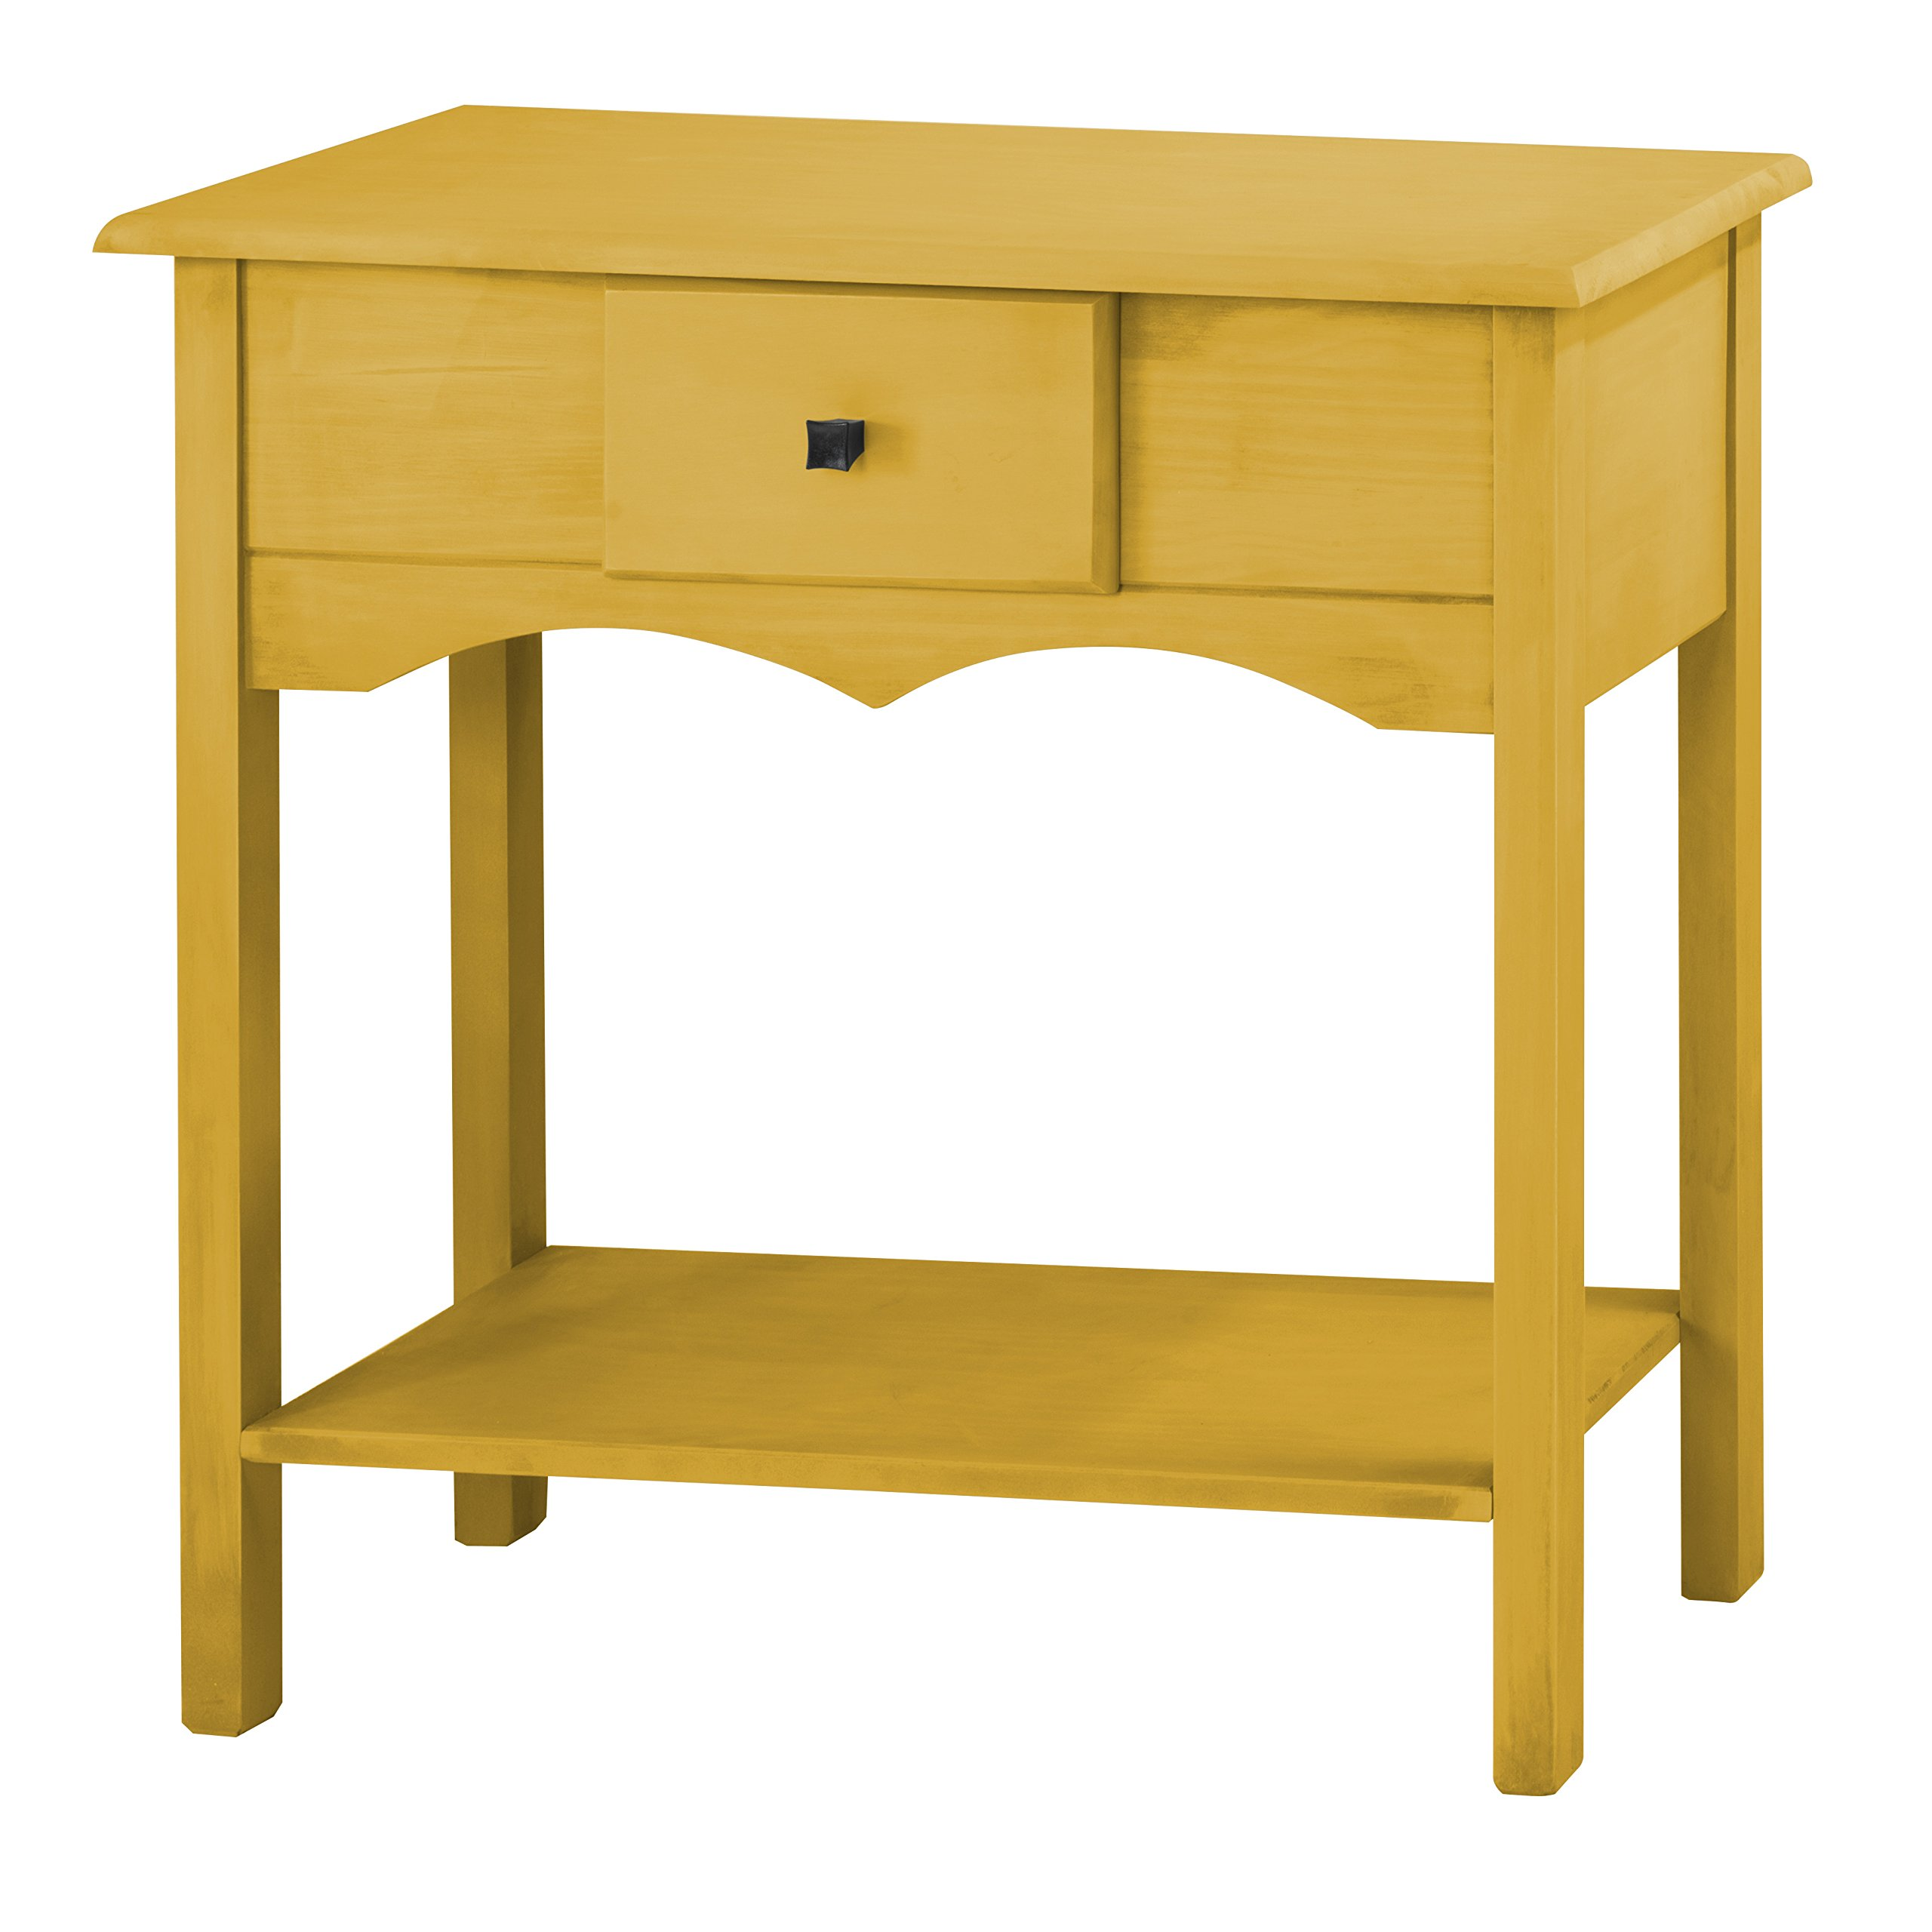 Manhattan Comfort Jay Collection Modern Wooden Sideboard Table with One Drawer and One Shelf, Yellow by Manhattan Comfort (Image #1)